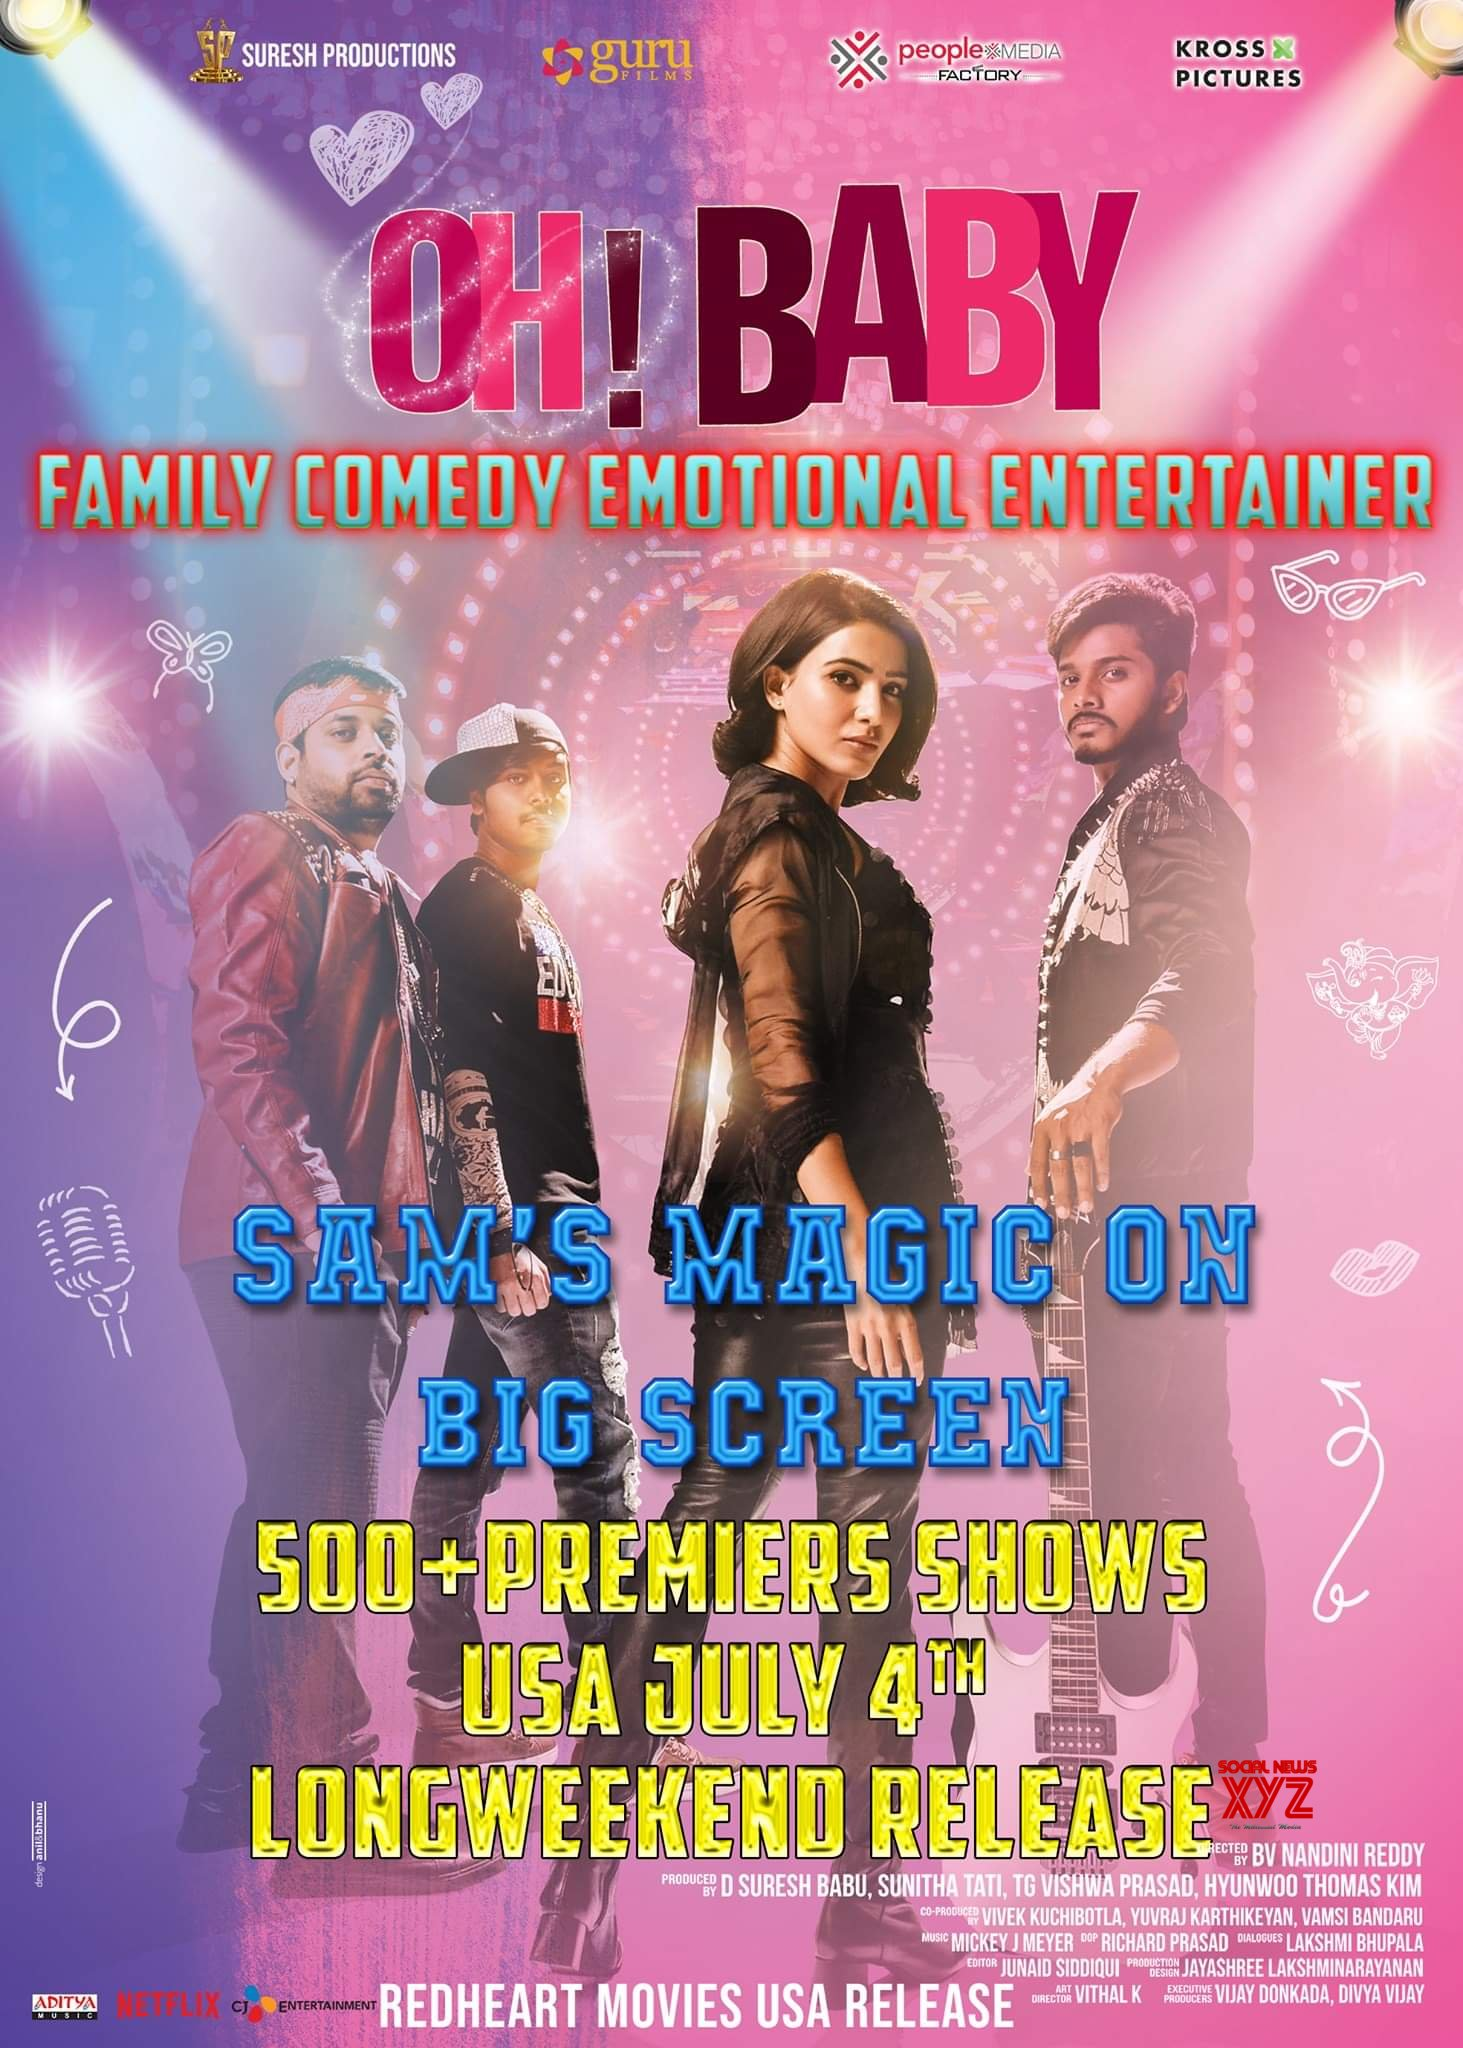 Oh Baby Movie To 500 Plus Premier Shows In The USA - Social News XYZ